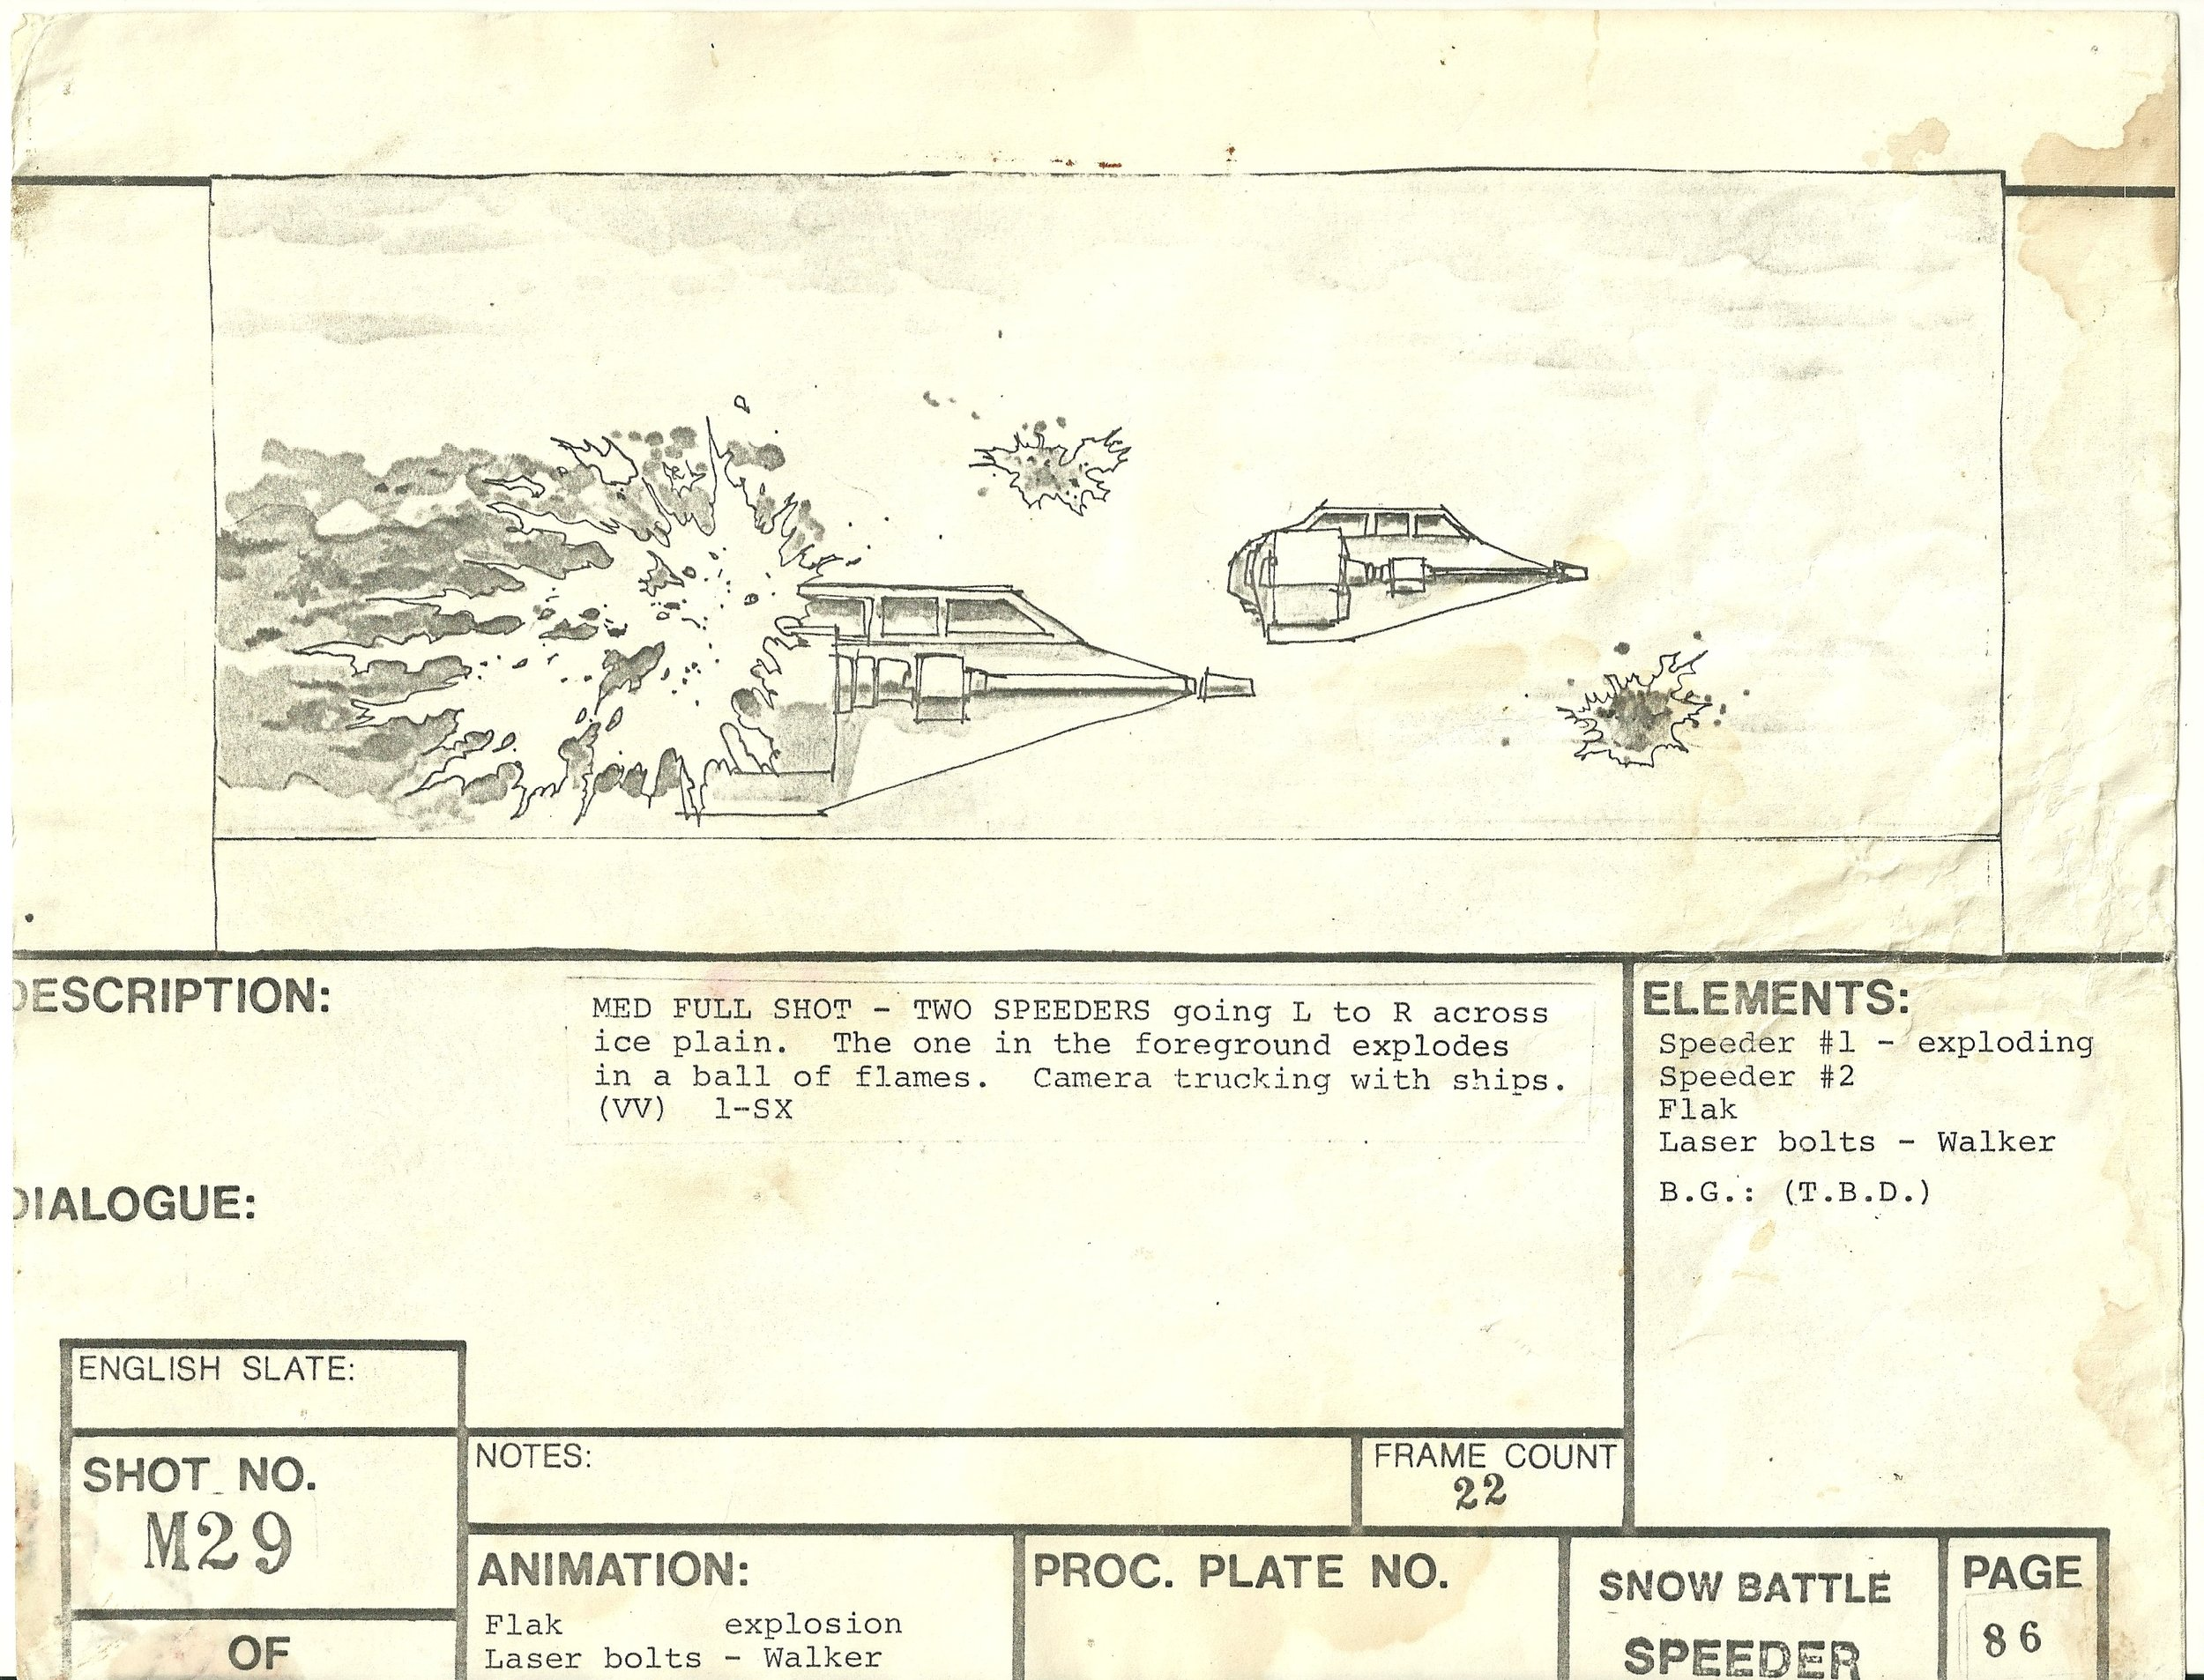 More action from the Hoth battlefield in this storyboard from THE EMPIRE STRIKES BACK- The Christopher Corey Smith Collection